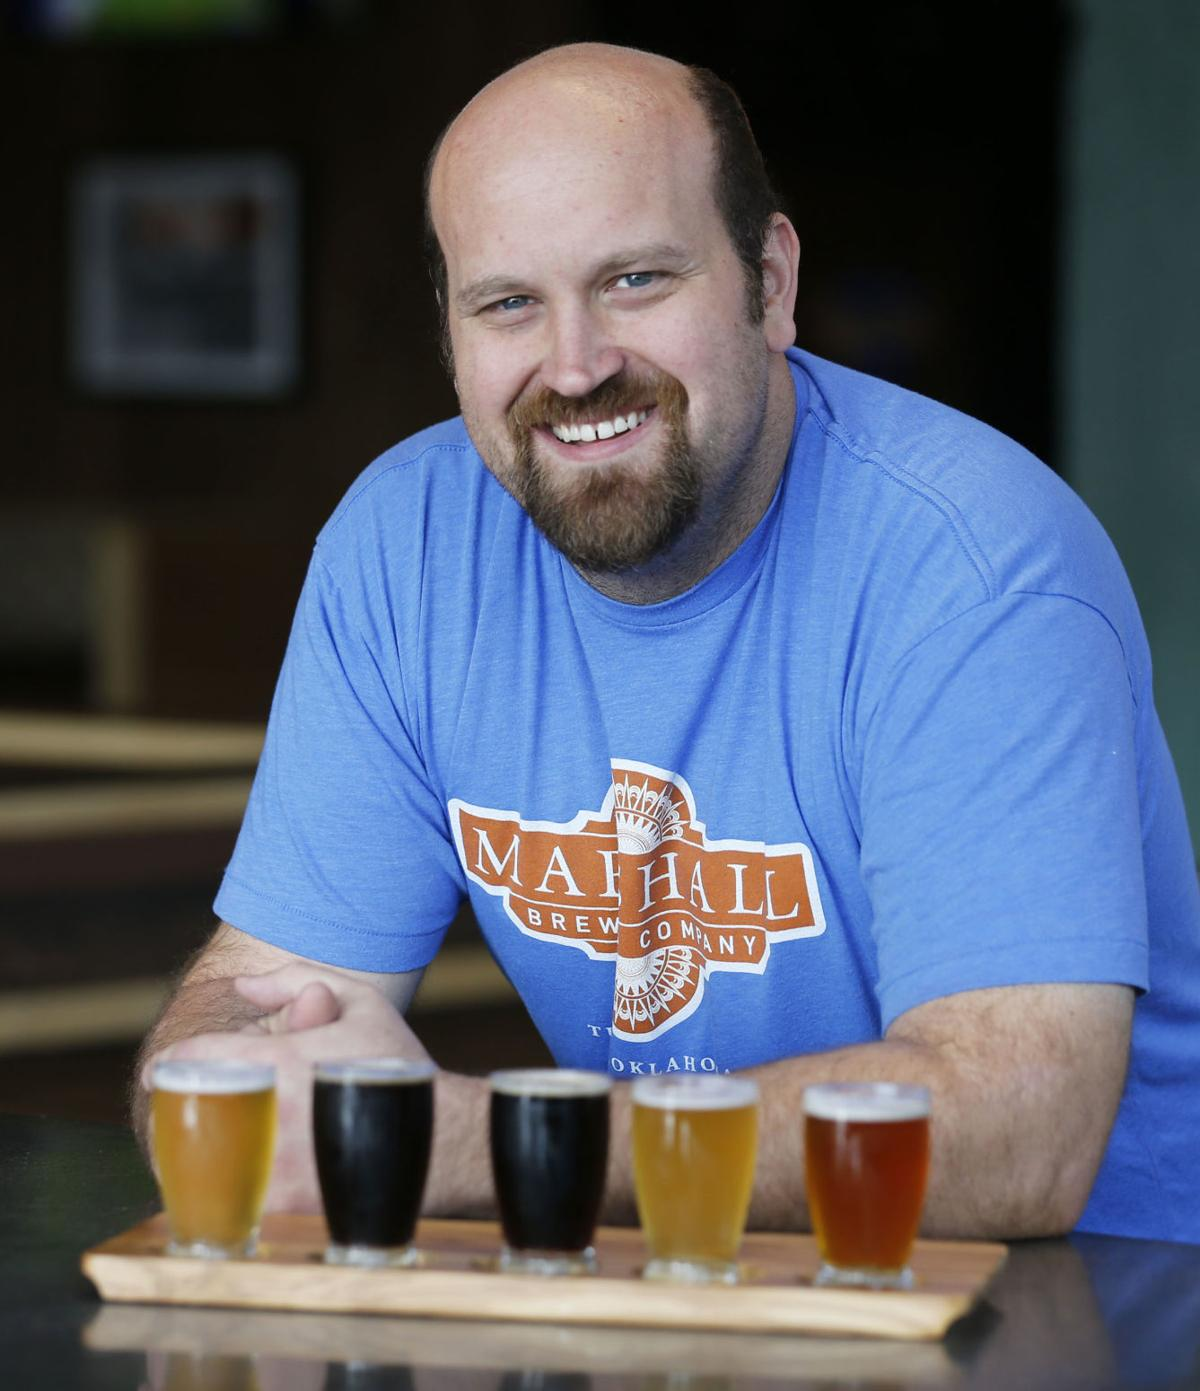 Elgin Park Tulsa Oklahoma: Marshall Brewing Co. Celebrates 10th Anniversary With A